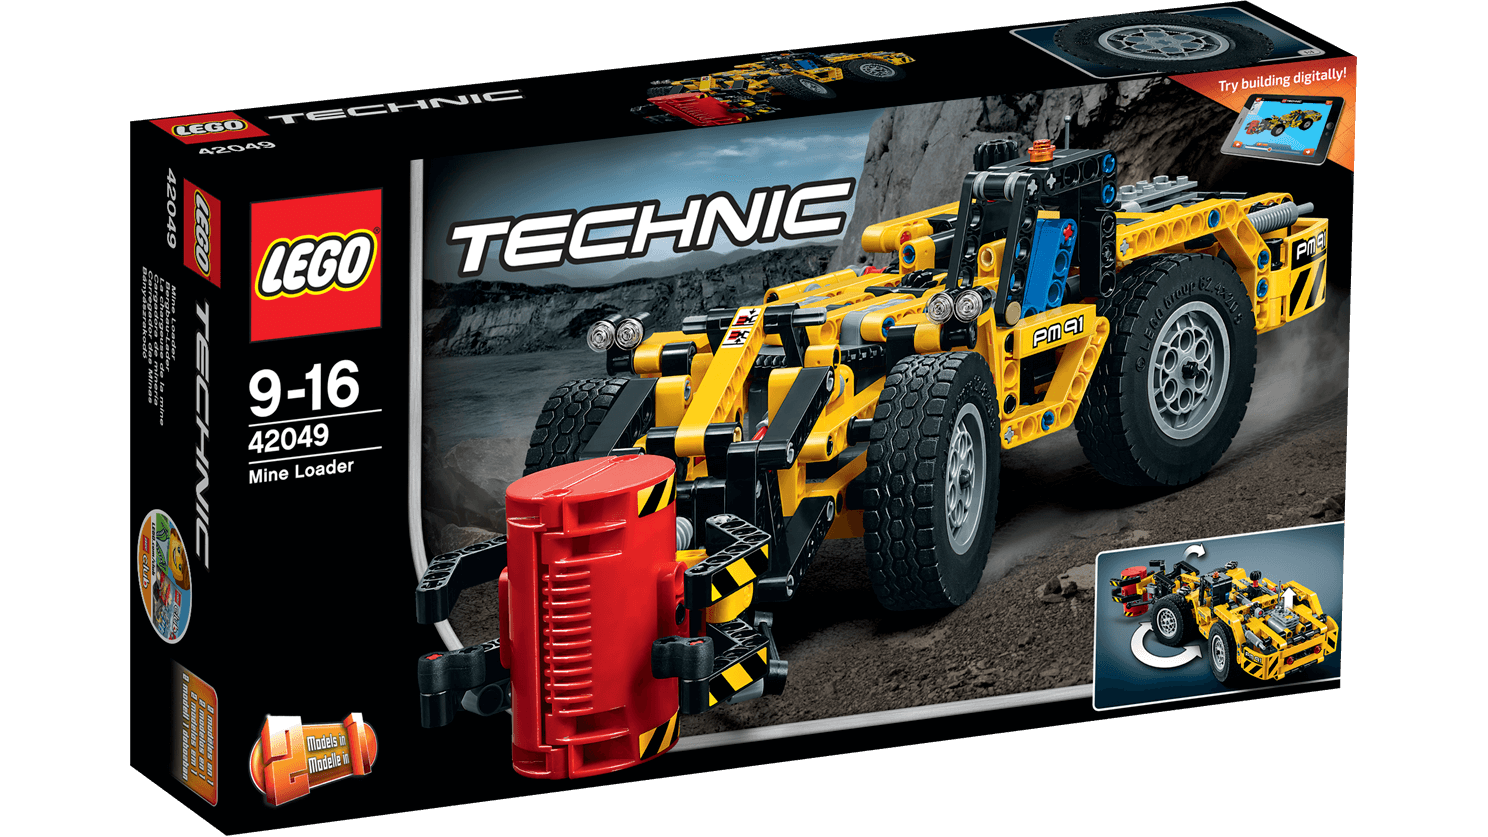 LEGO Technic Mine Loader 42049 Vehicle Toy Sonstige